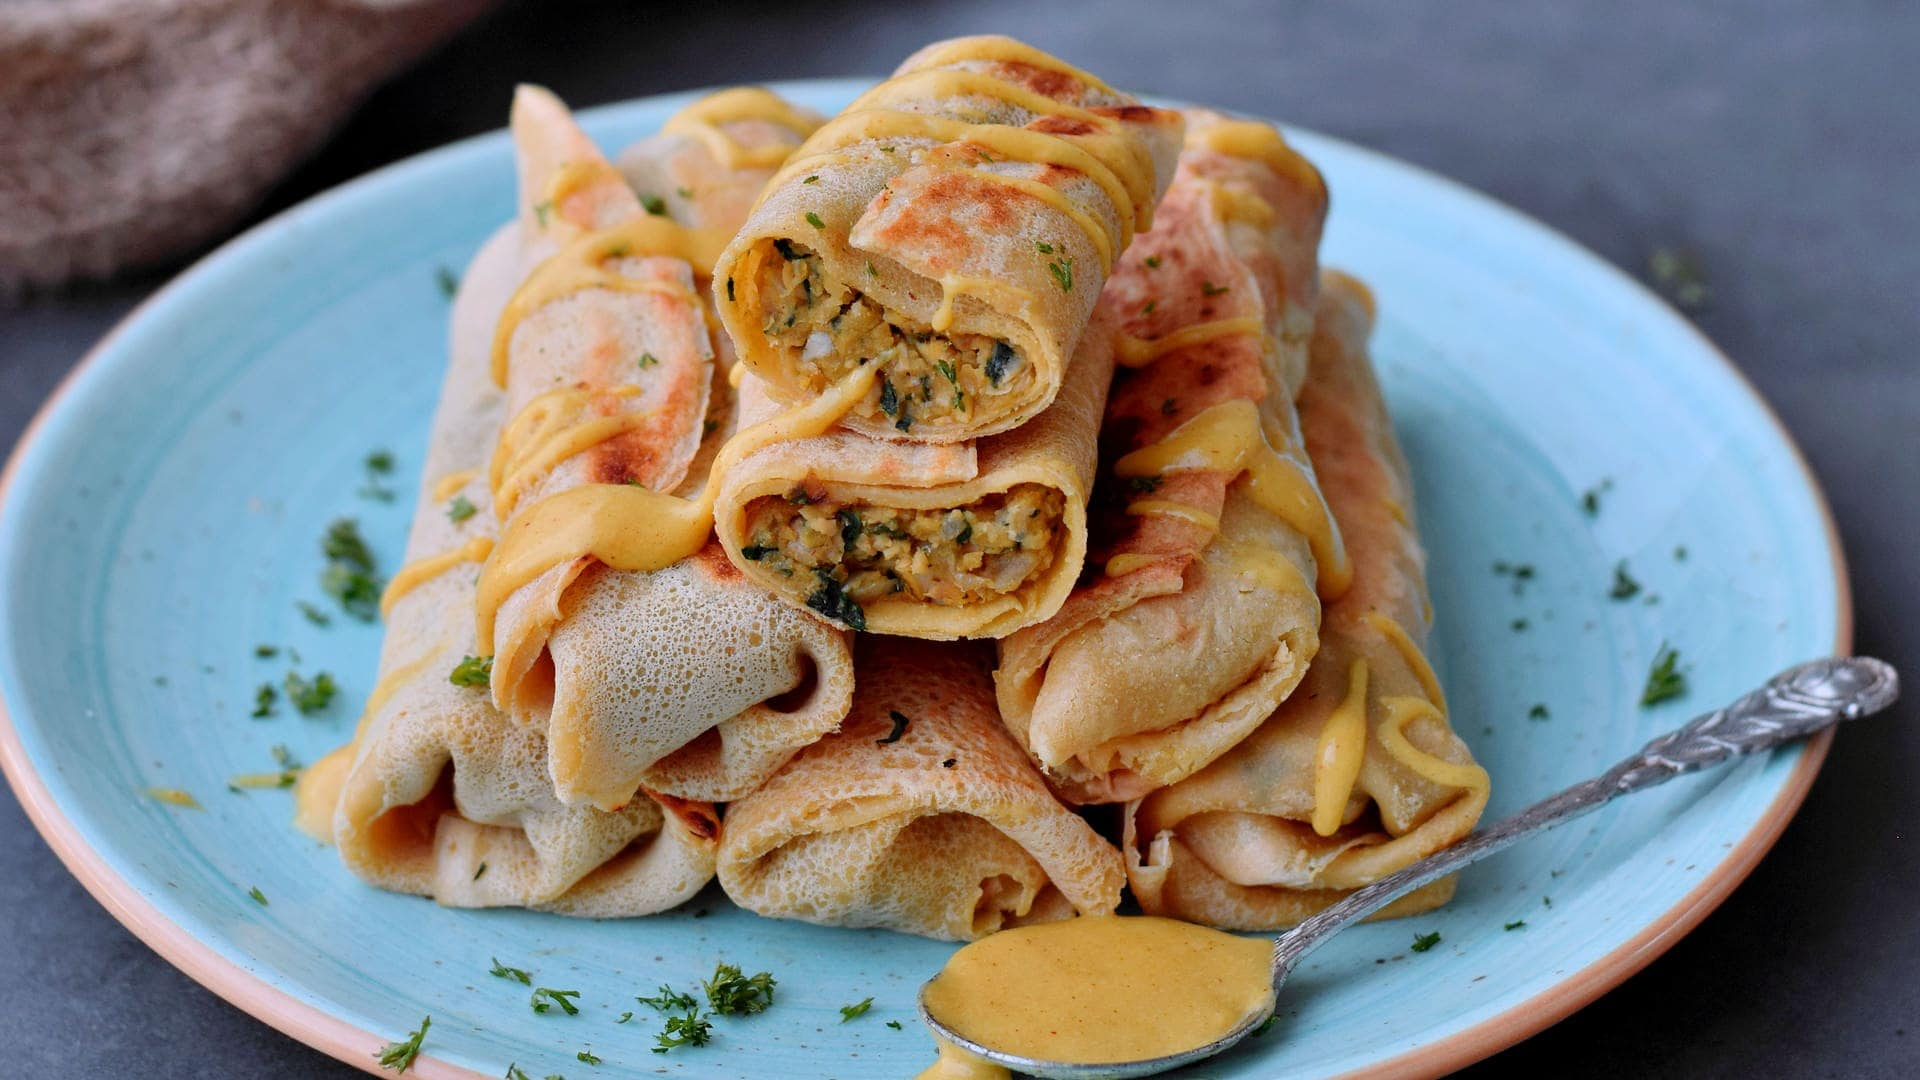 6 homemade savory crepes on a turquoise plate with vegan cheese sauce